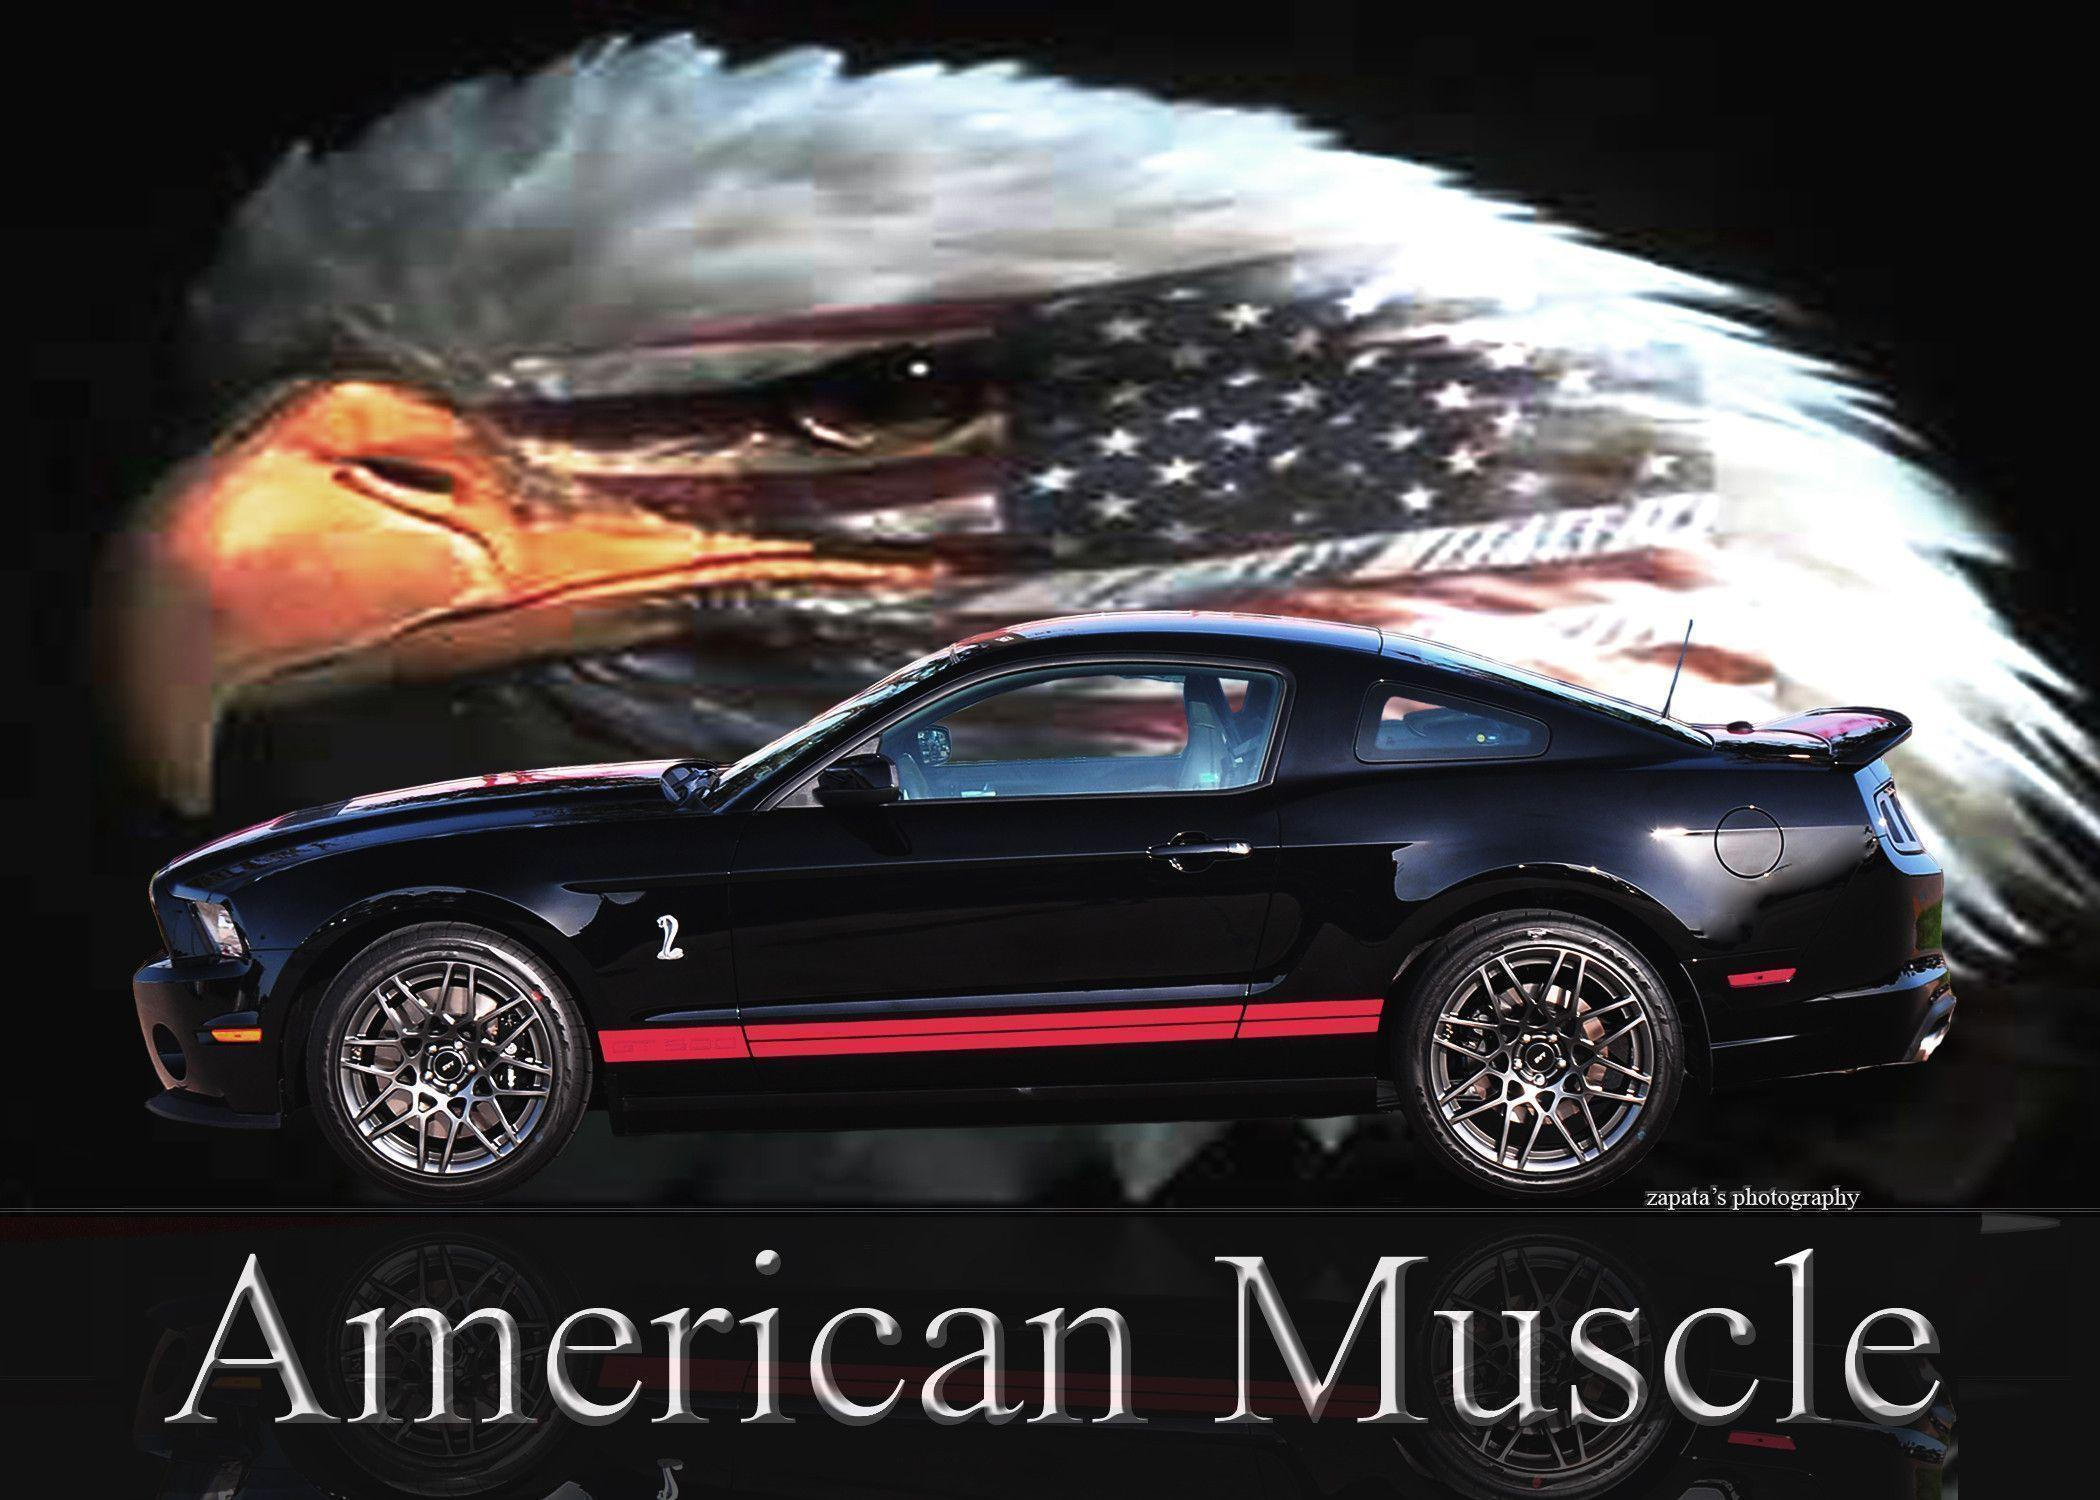 Wallpaper American Muscle Car American Muscle Car Wallpapers Wallpaper Cave